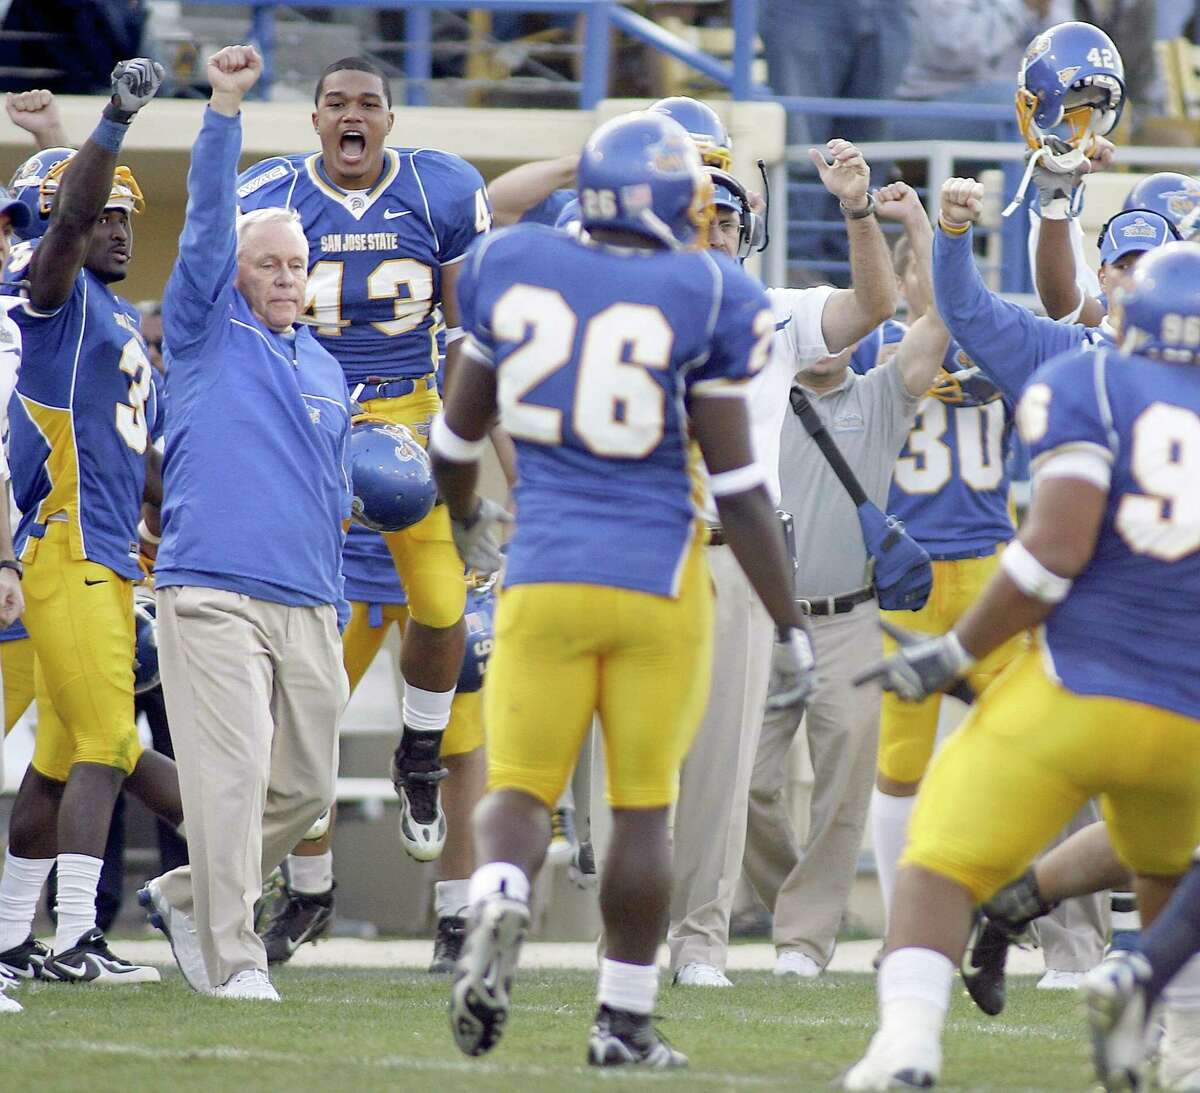 Dick Tomey's best season at San Jose State was 2006 when the Spartans went 9-4 and won the New Mexico Bowl.